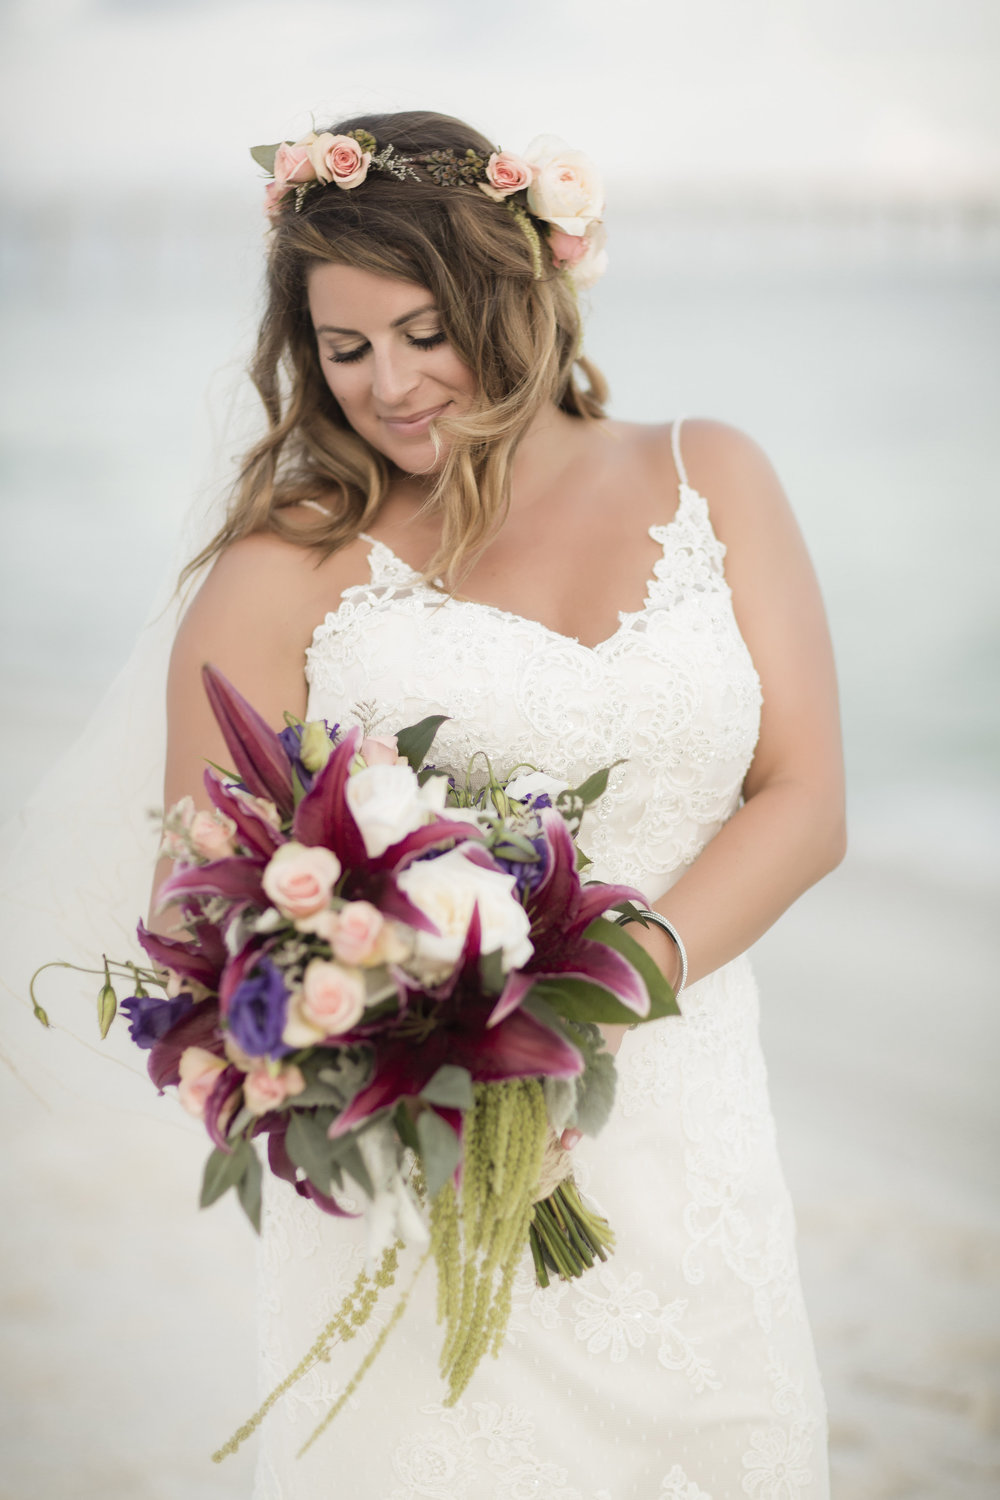 Beautiful Bride Bouquet by Fiore of Pensacola - pink, plum, white, and mint green